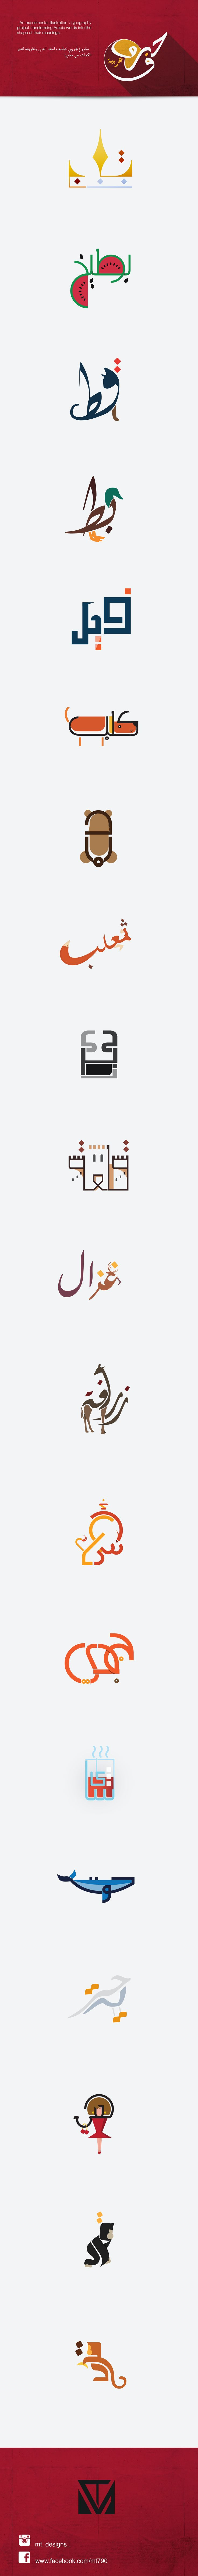 An experimental illustration \ typography project transforming Arabic words into the shape of their meanings. https://www.behance.net/gallery/33828638/-Arabic-Letters